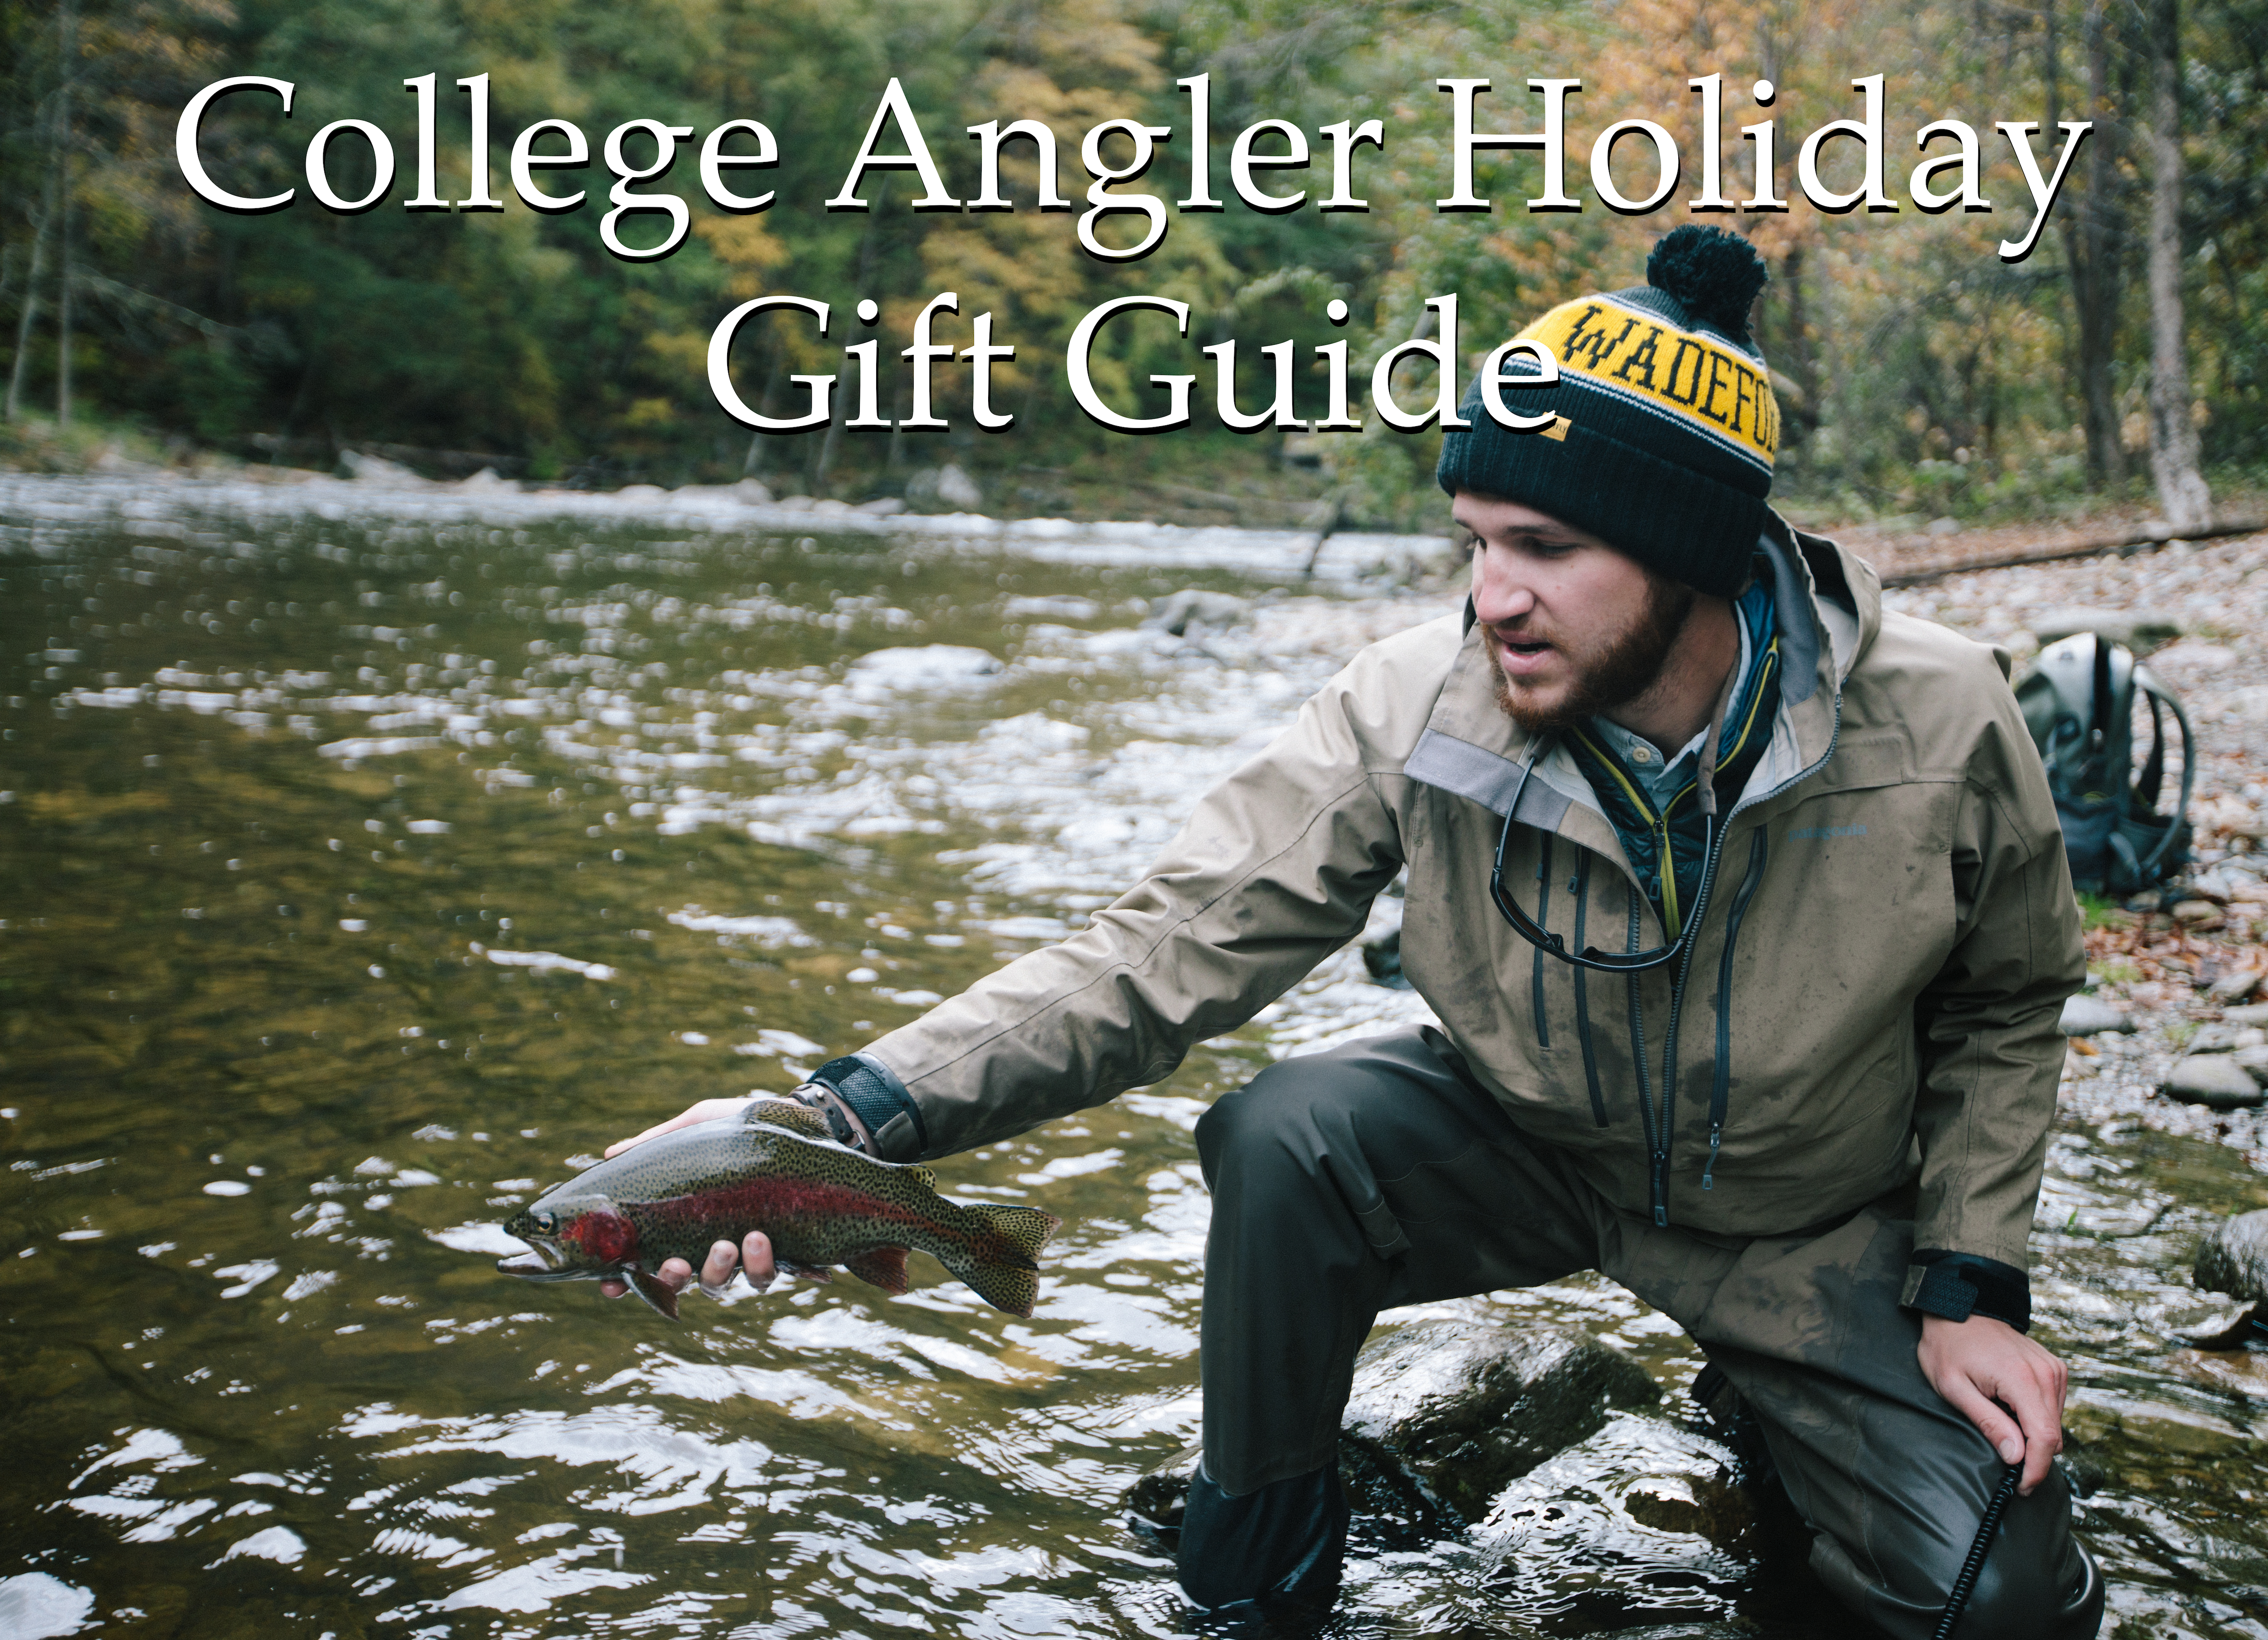 The College Angler: Holiday Gift Guide